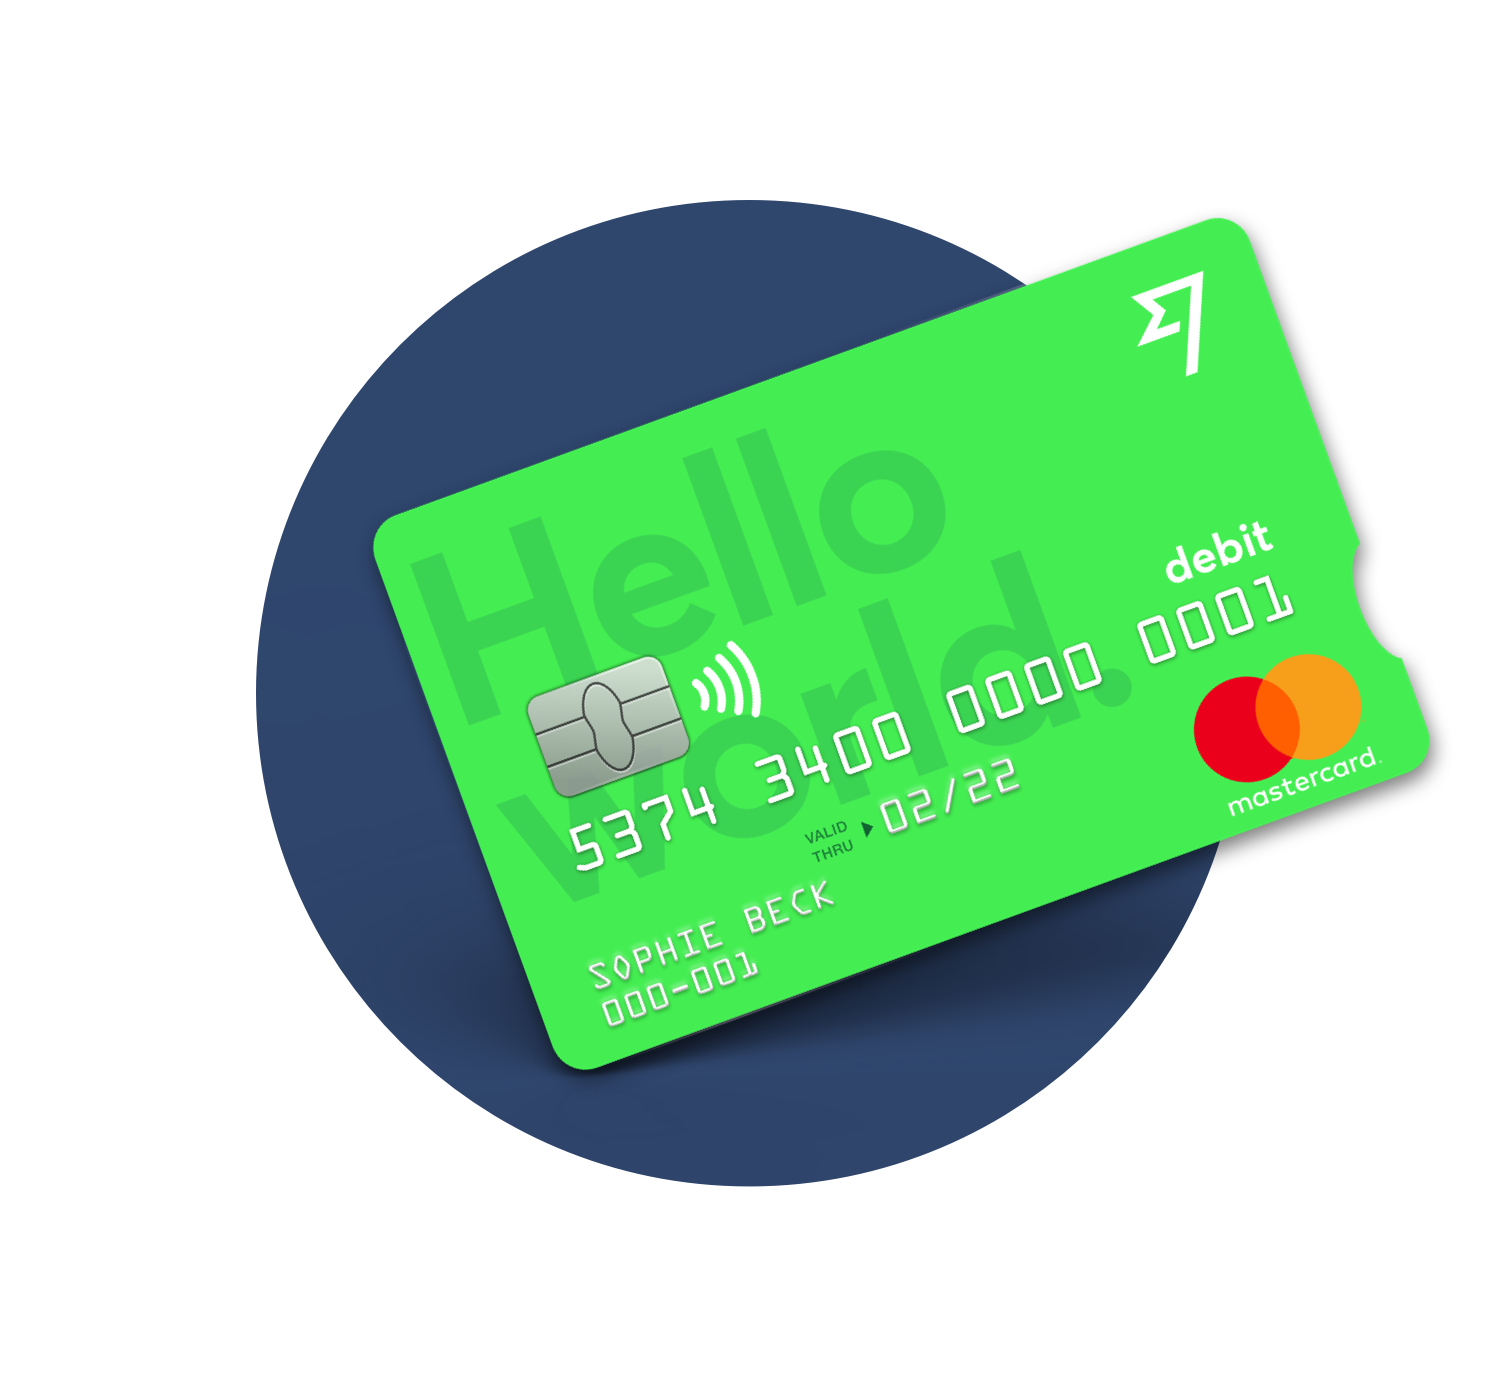 New! The TransferWise debit Mastercard®